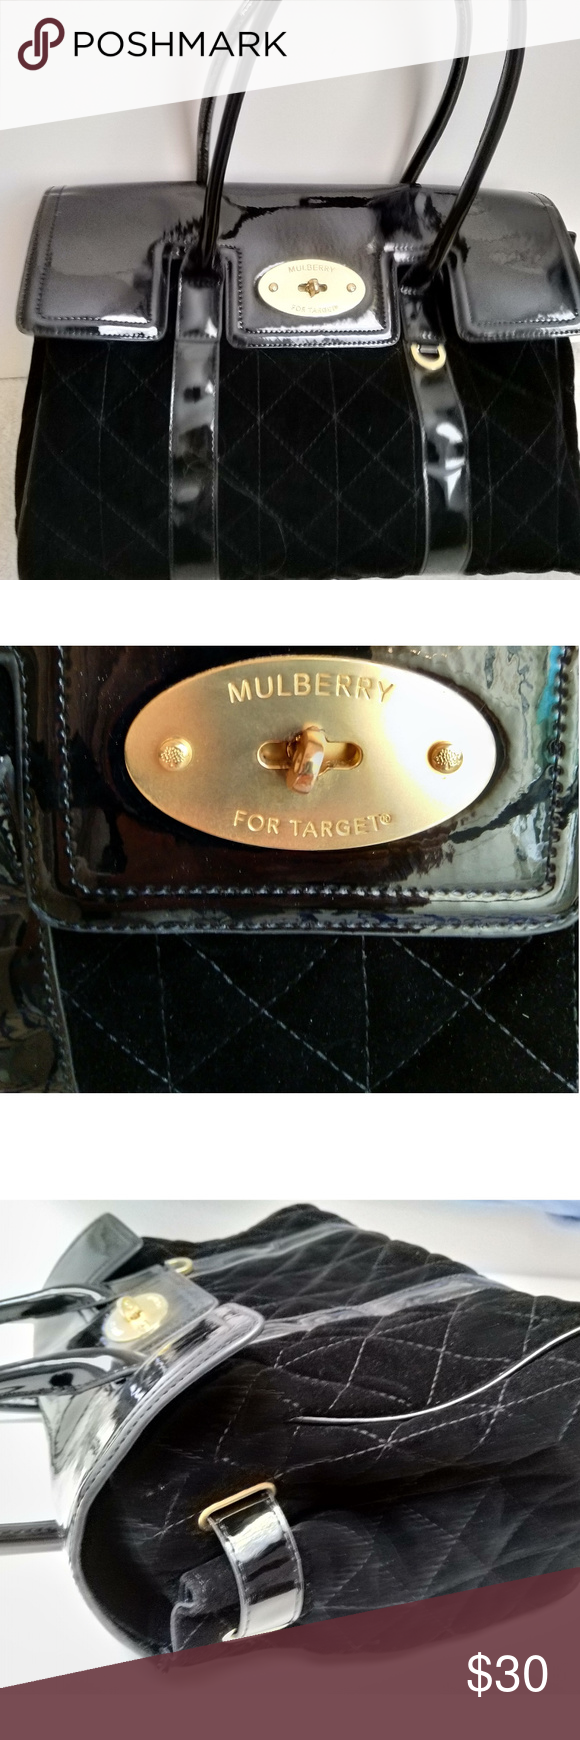 MULBERRY bag forTARGET black patent & velvet style MULBERRY handle bag for TARGET black patent & quilted velvet look, handle bag with gold-tone hardware, protective feet at base, turn-lock closure at flap. Great condition, just little wear on lock plate (see last 2 pictures) Cannot see it when it is locked. 14.5 x 5.25 x 11. Mulberry did a collaboration with Target years ago,limited edition. Mulberry for Target Bags #mulberrybag